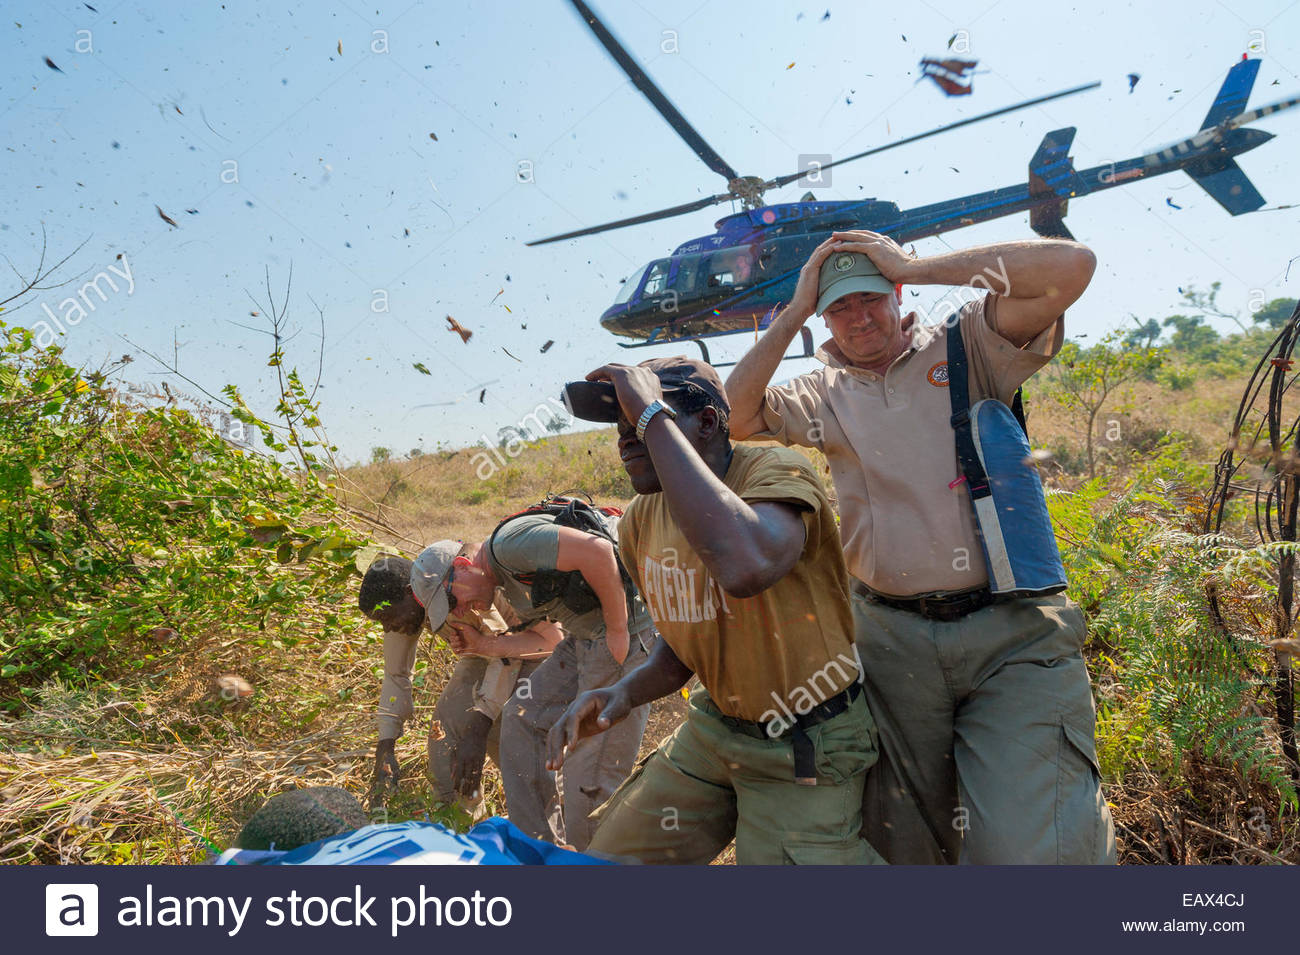 Helicopters deliver park staff to a remote slope Mount Gorongosa. - Stock Image